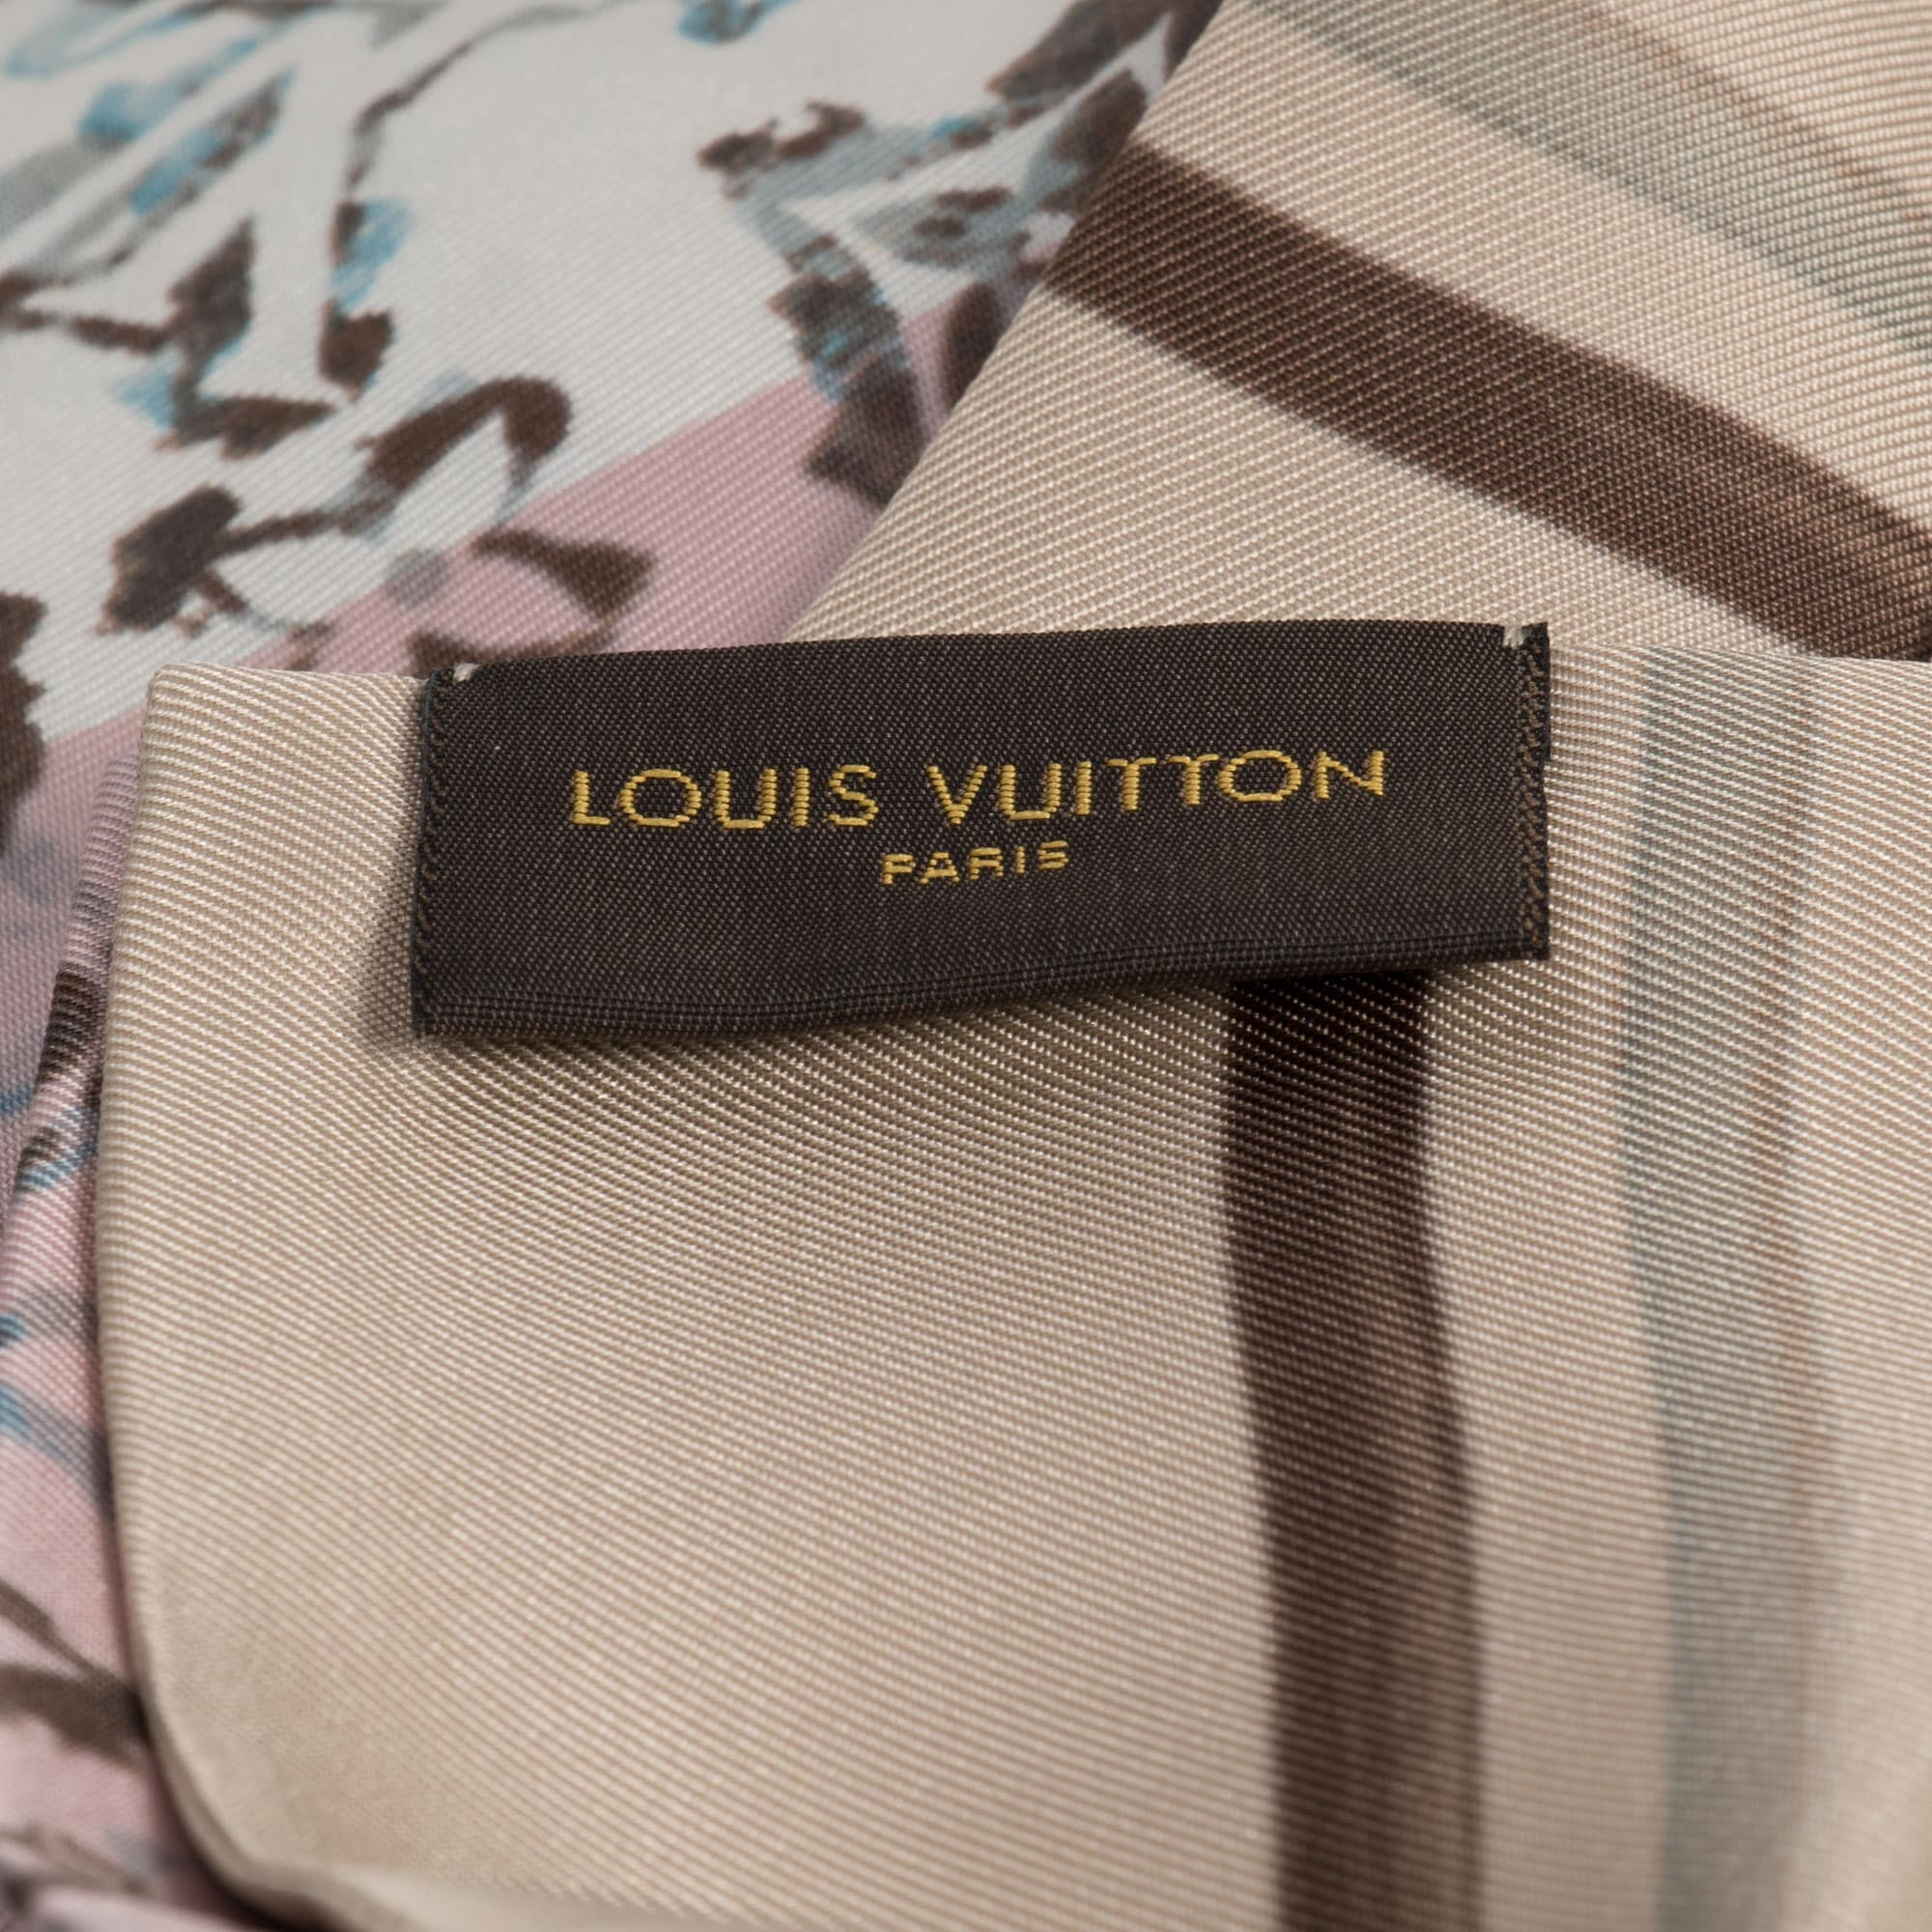 a937a3d28e4c Shop Louis Vuitton Beige Monogram Rainbow Giant Bandeau - Free Shipping  Today - Overstock - 23082911